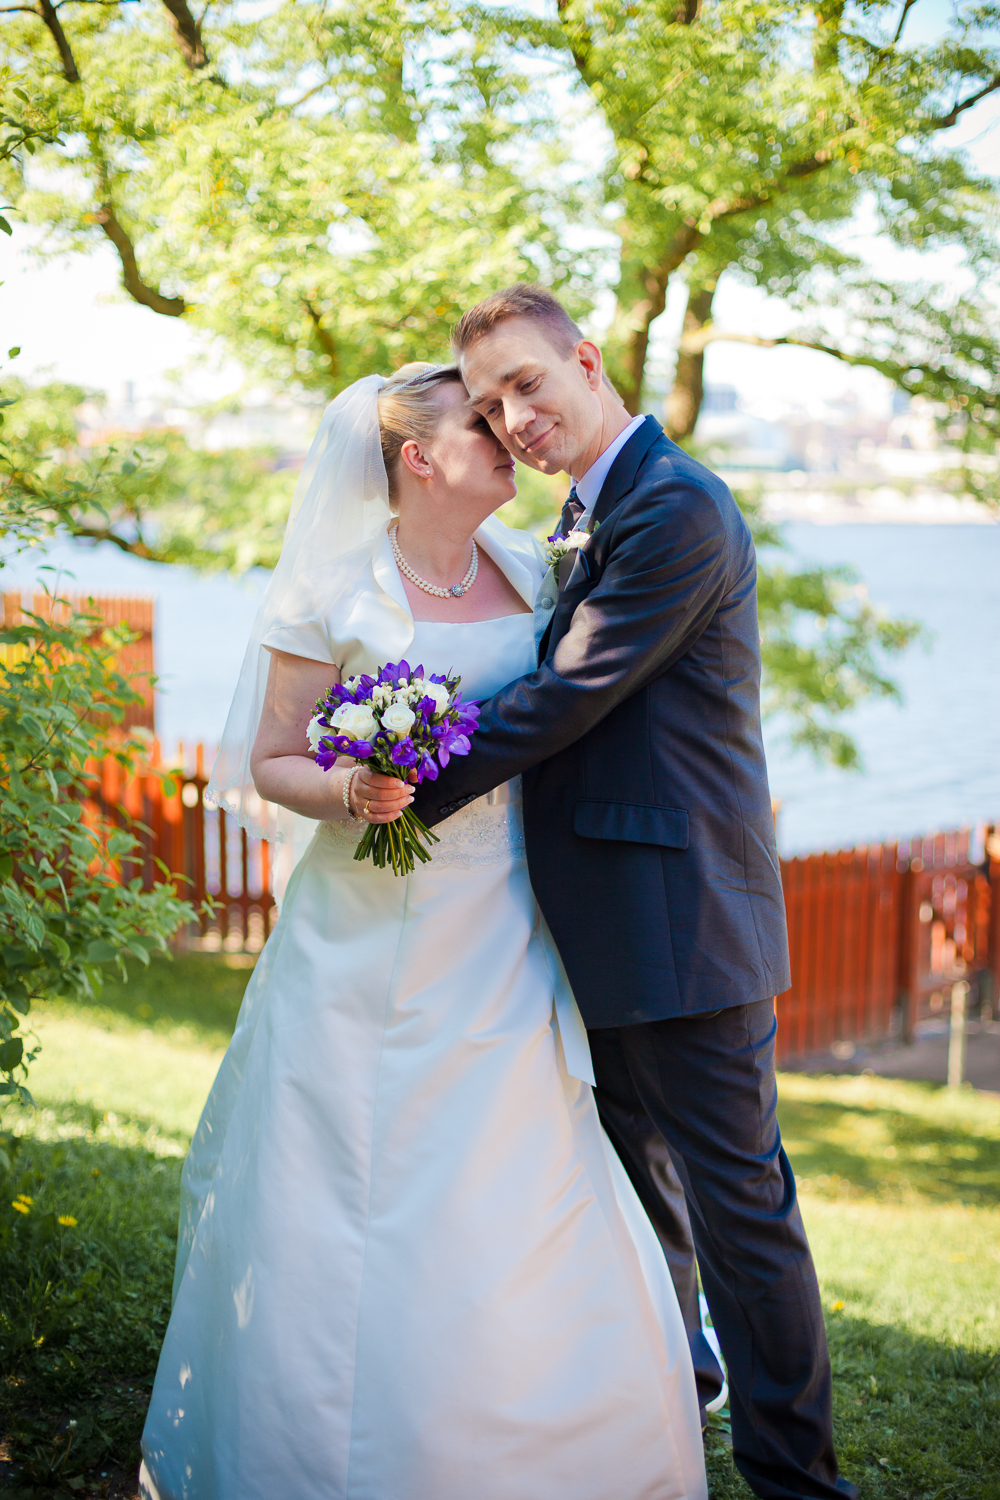 wedding_louise_fredrik-35.jpg